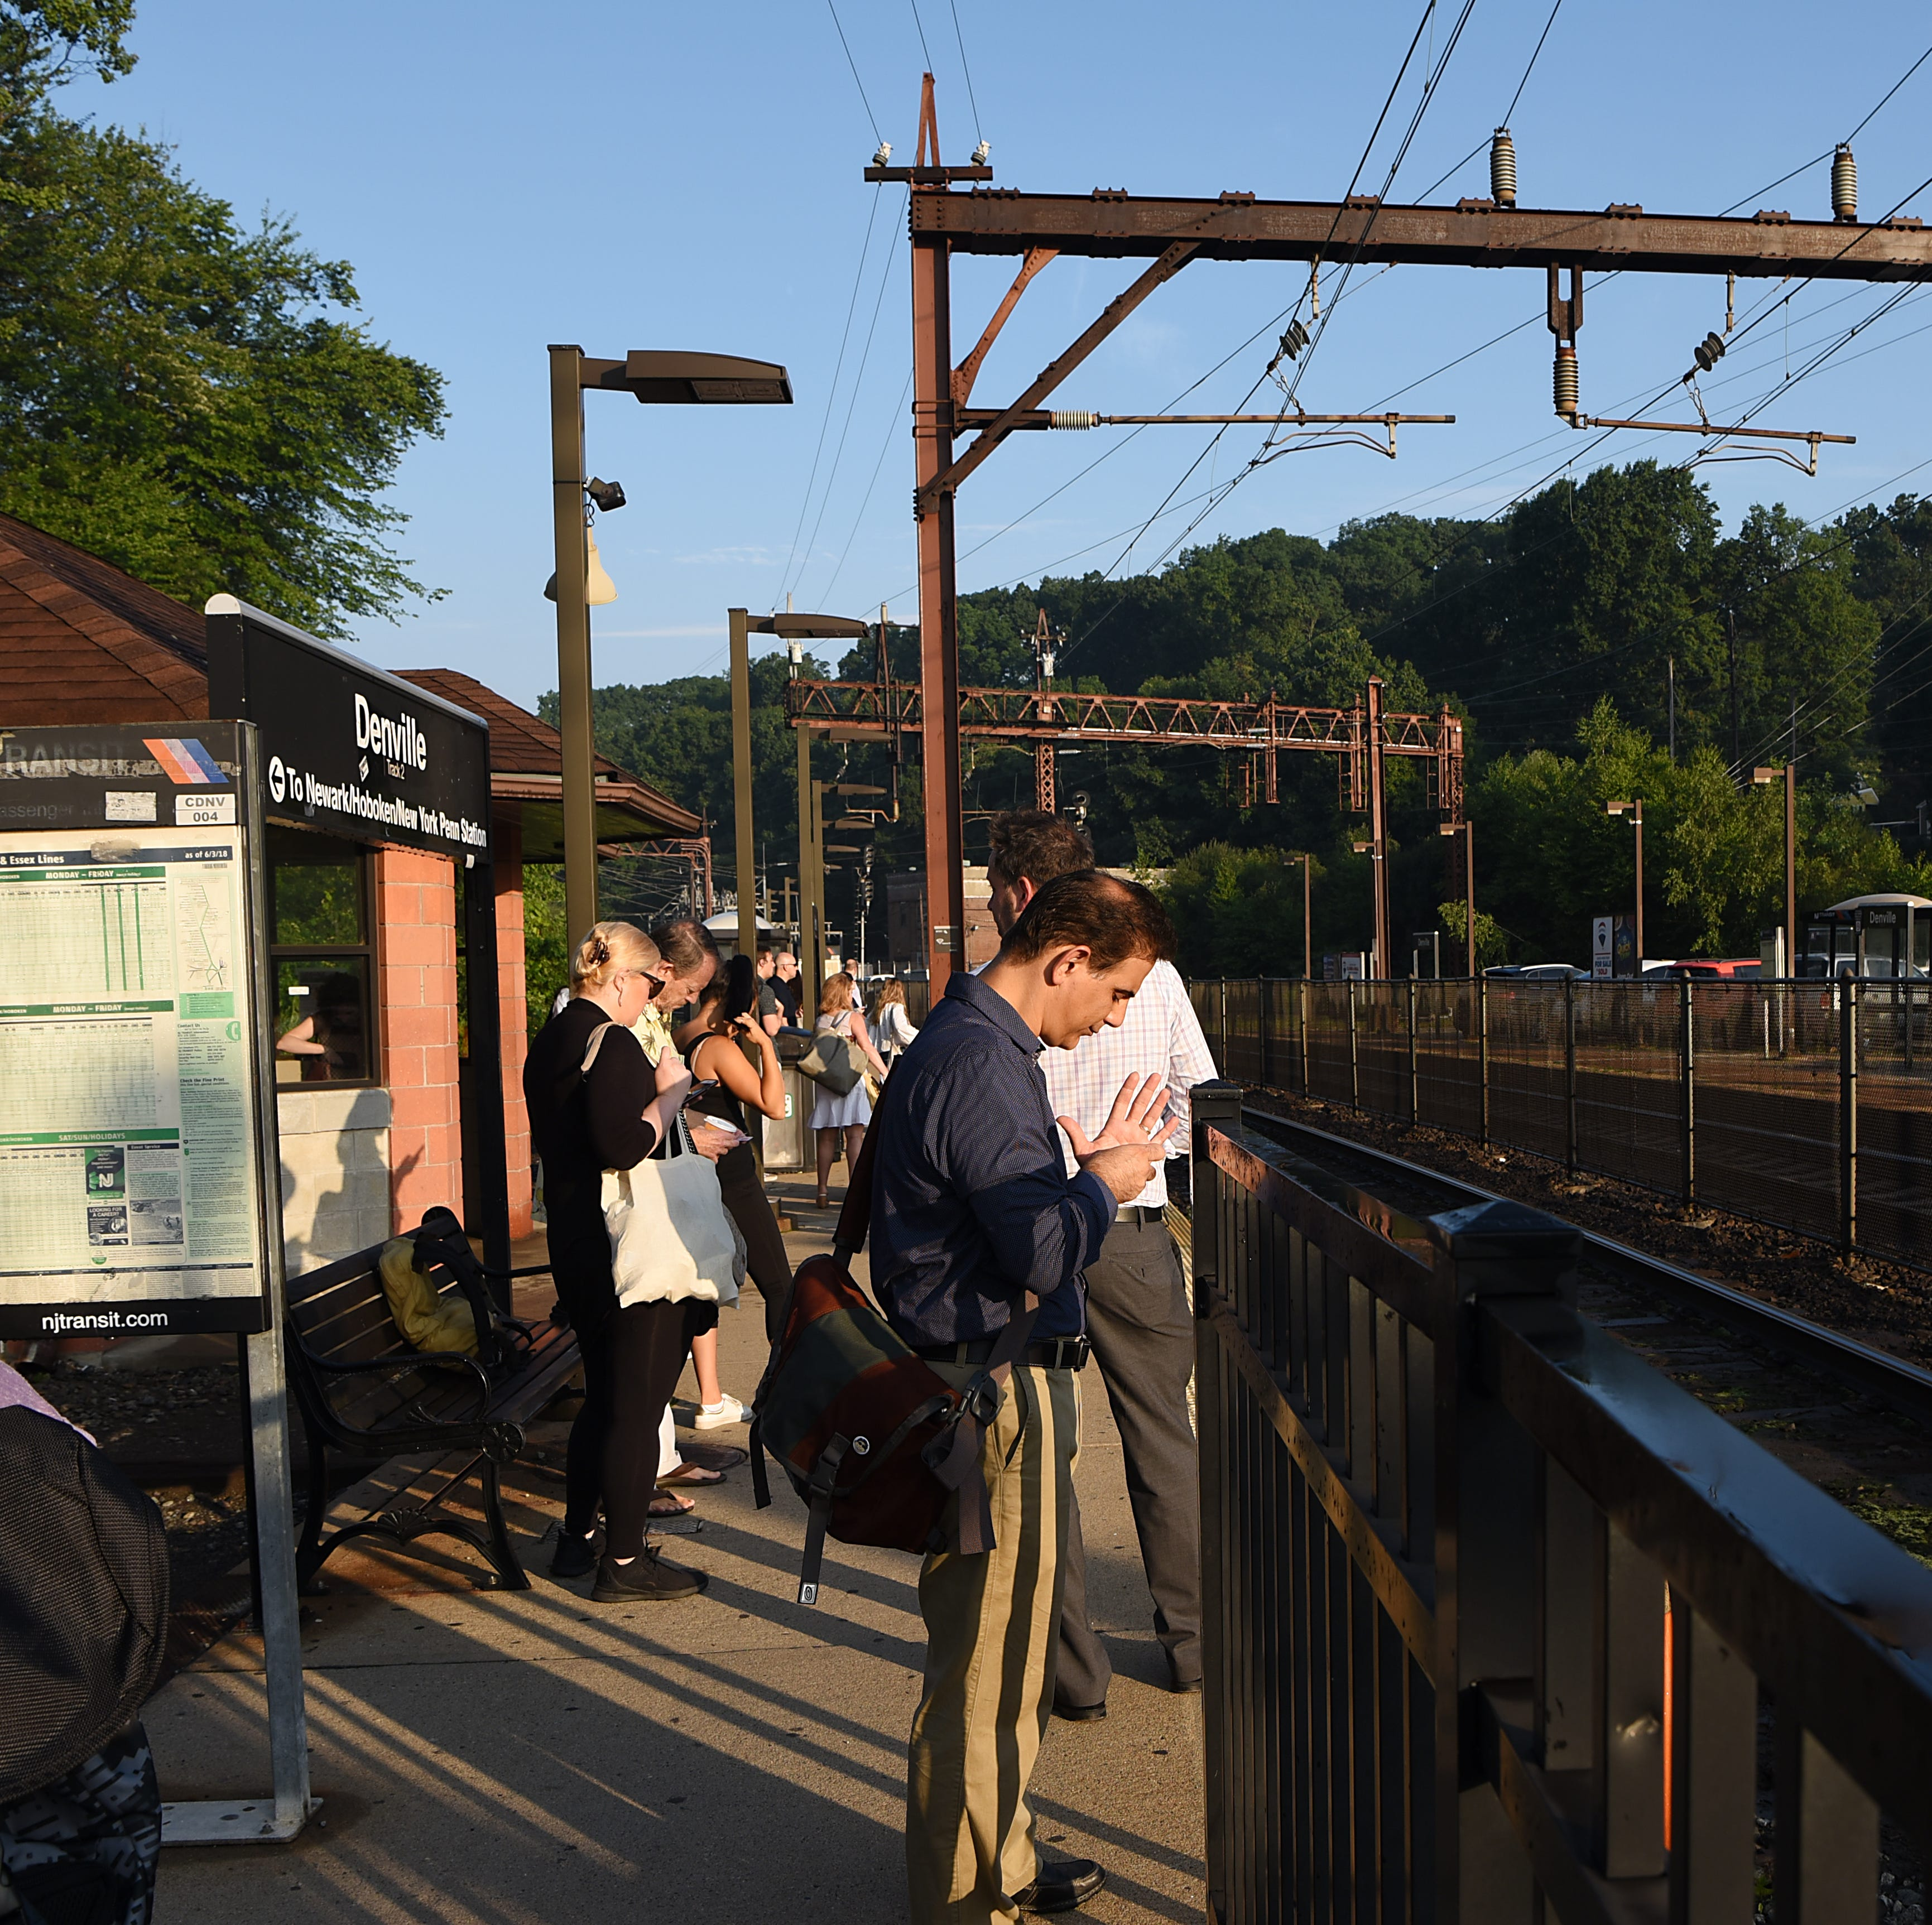 NJ Transit: One train canceled, minor delays on Pascack Valley line